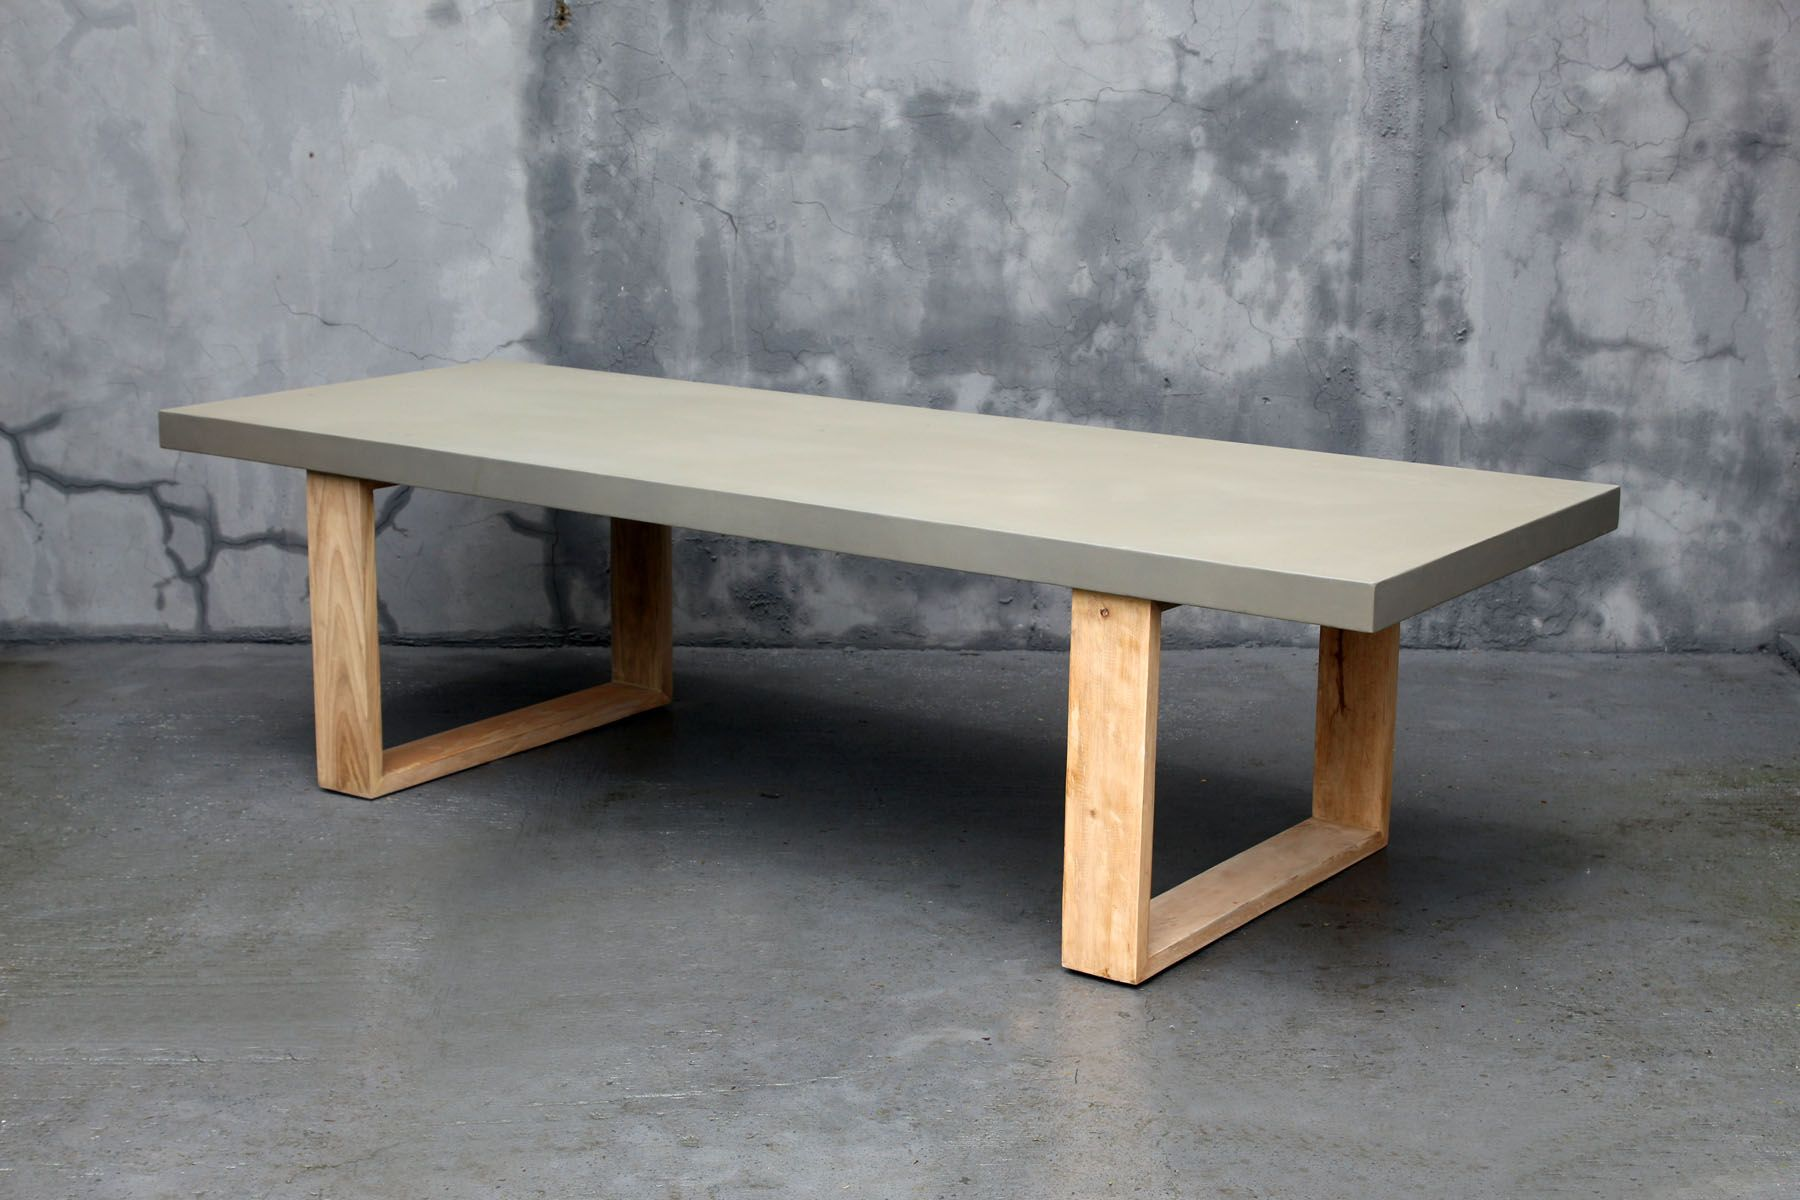 Material Hard Wooden U Shaped Legs And Stone Cast Table Top